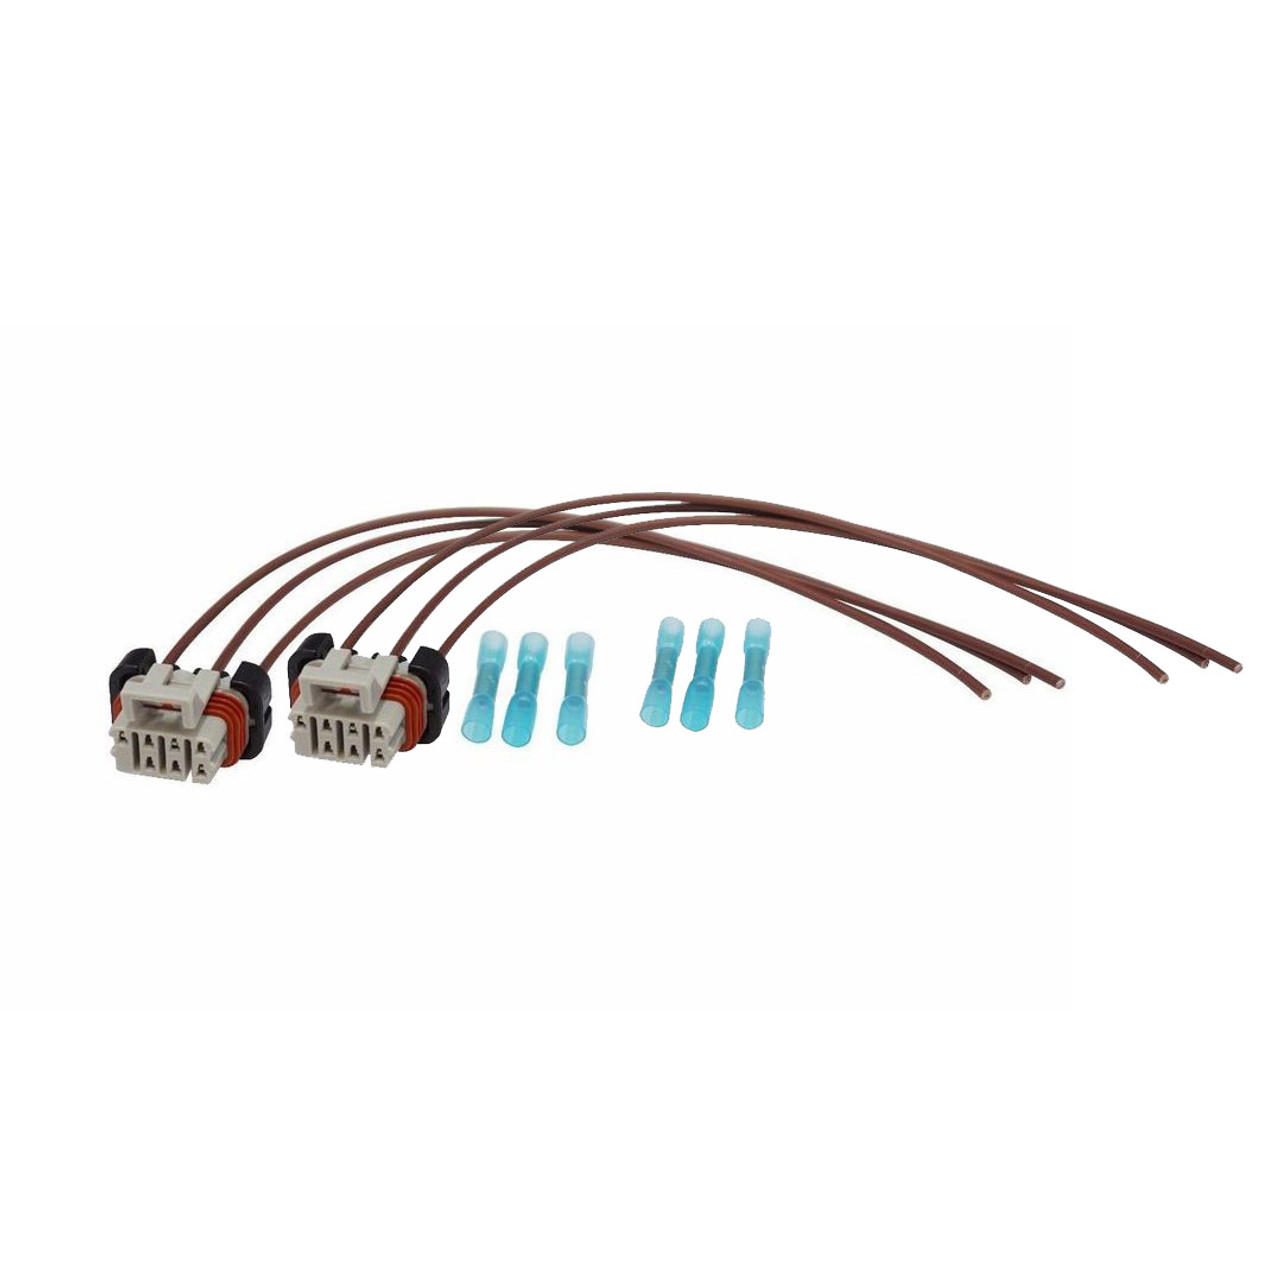 hight resolution of headlight wiring harness connector pigtail for 05 14 freightliner columbia 2 pack